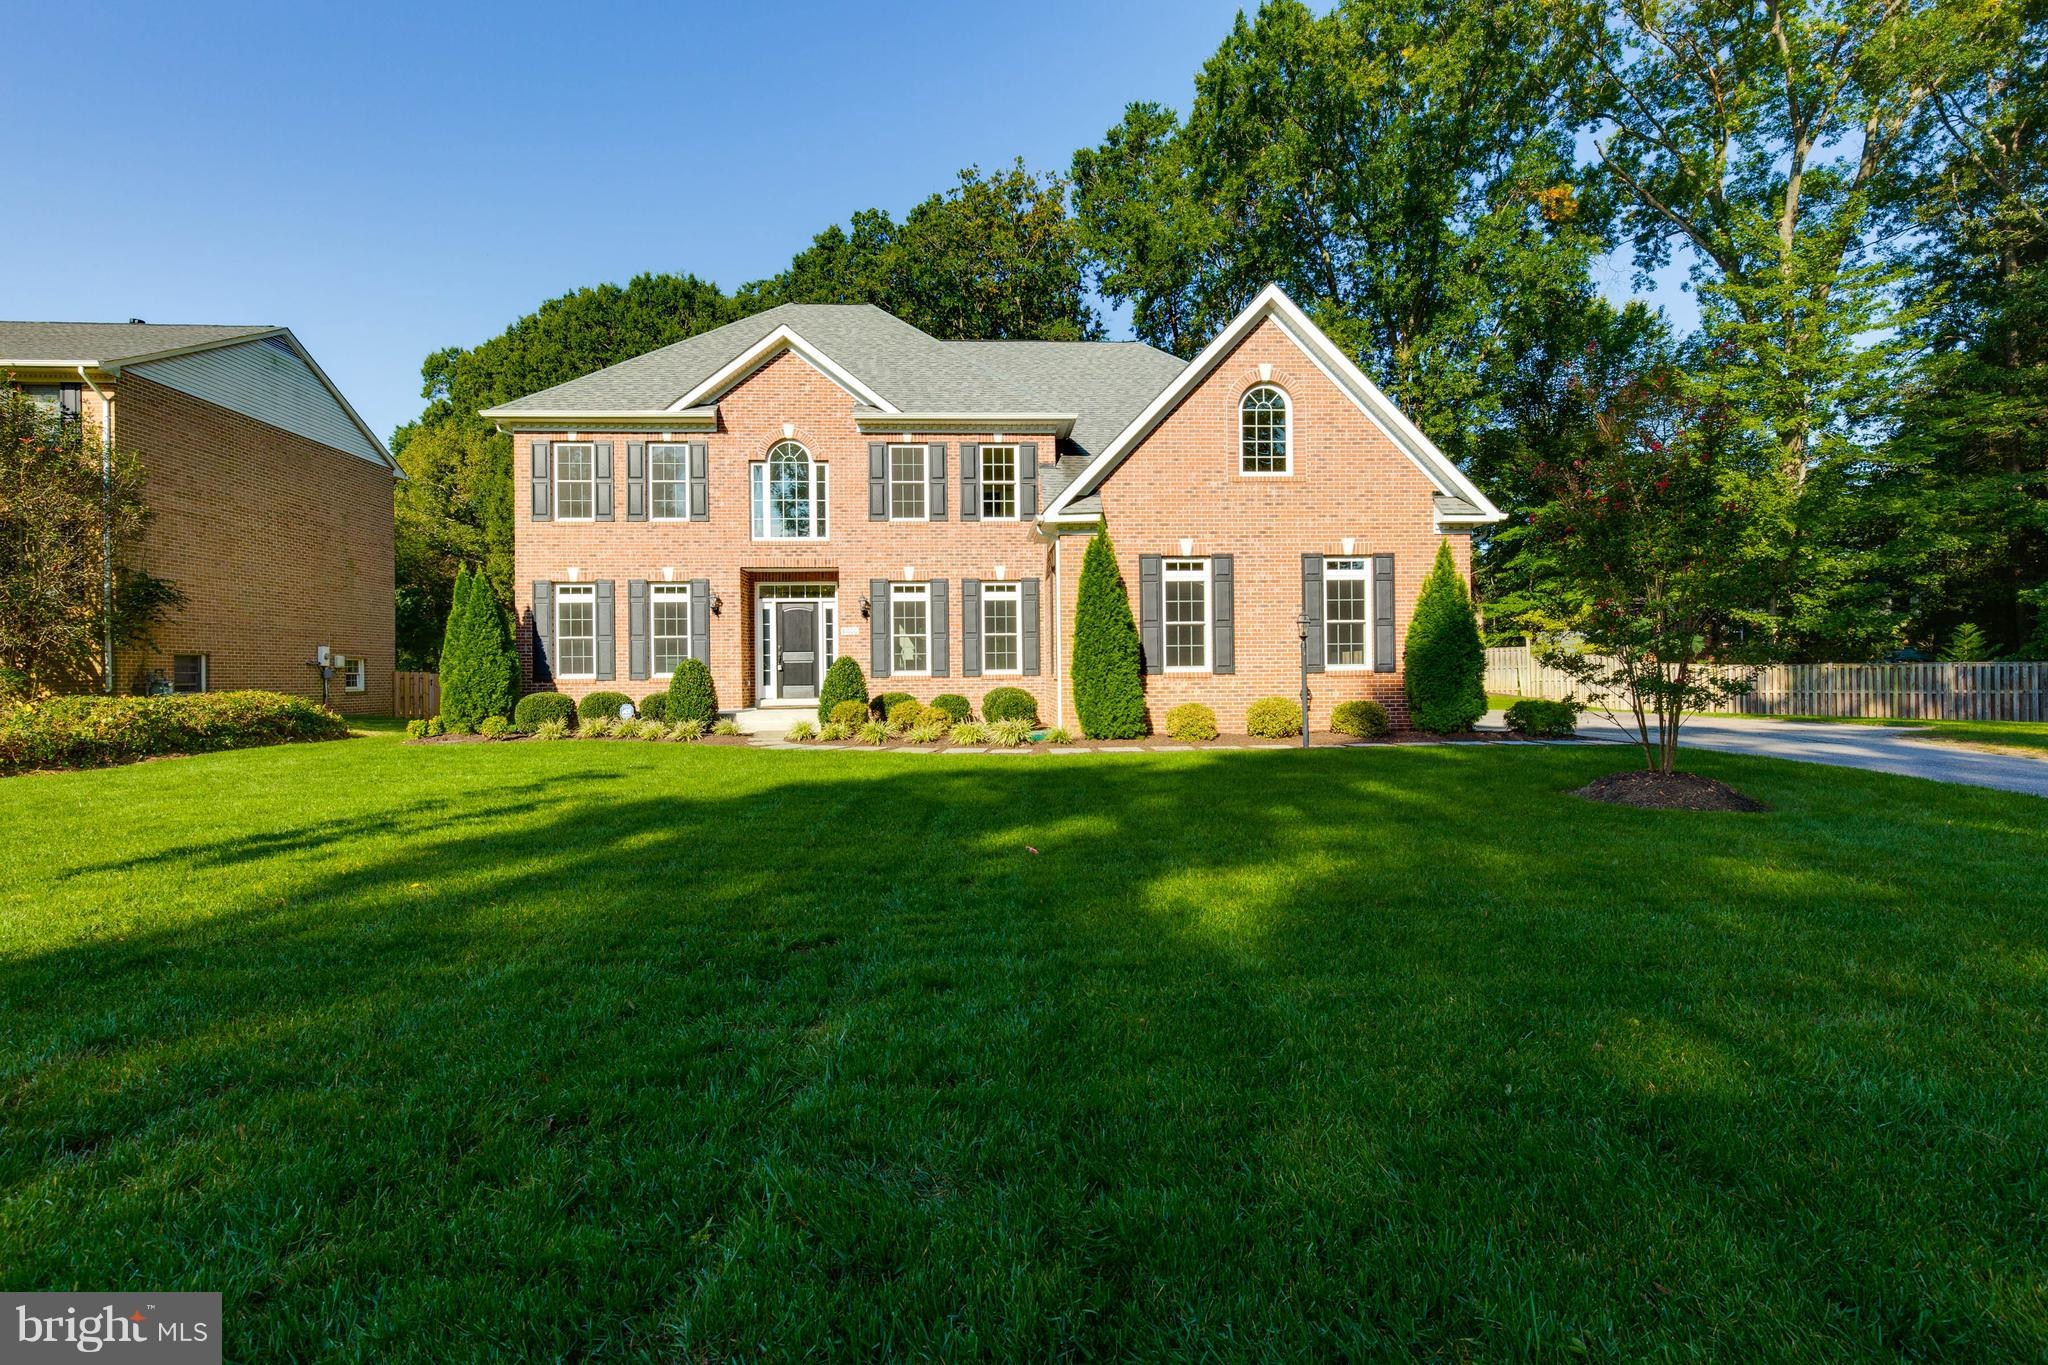 Graciously Designed Custom Colonial in Mt Vernon Built by NDI in 2013 * Airy 2-Story Foyer & Living Rm, Open Kitchen w/Abundant Counter & Cabinet Space, Spacious MBR w/Sitting Rm, Tray Ceiling & Closet System * Large Basement w/Walk-Up Entrance * 3 Car Garage * Under Builder Structural Warranty Until 2023 * Located on .5 Acre w/Flat Terrain * Near Potomac River, Mt Vernon Trail